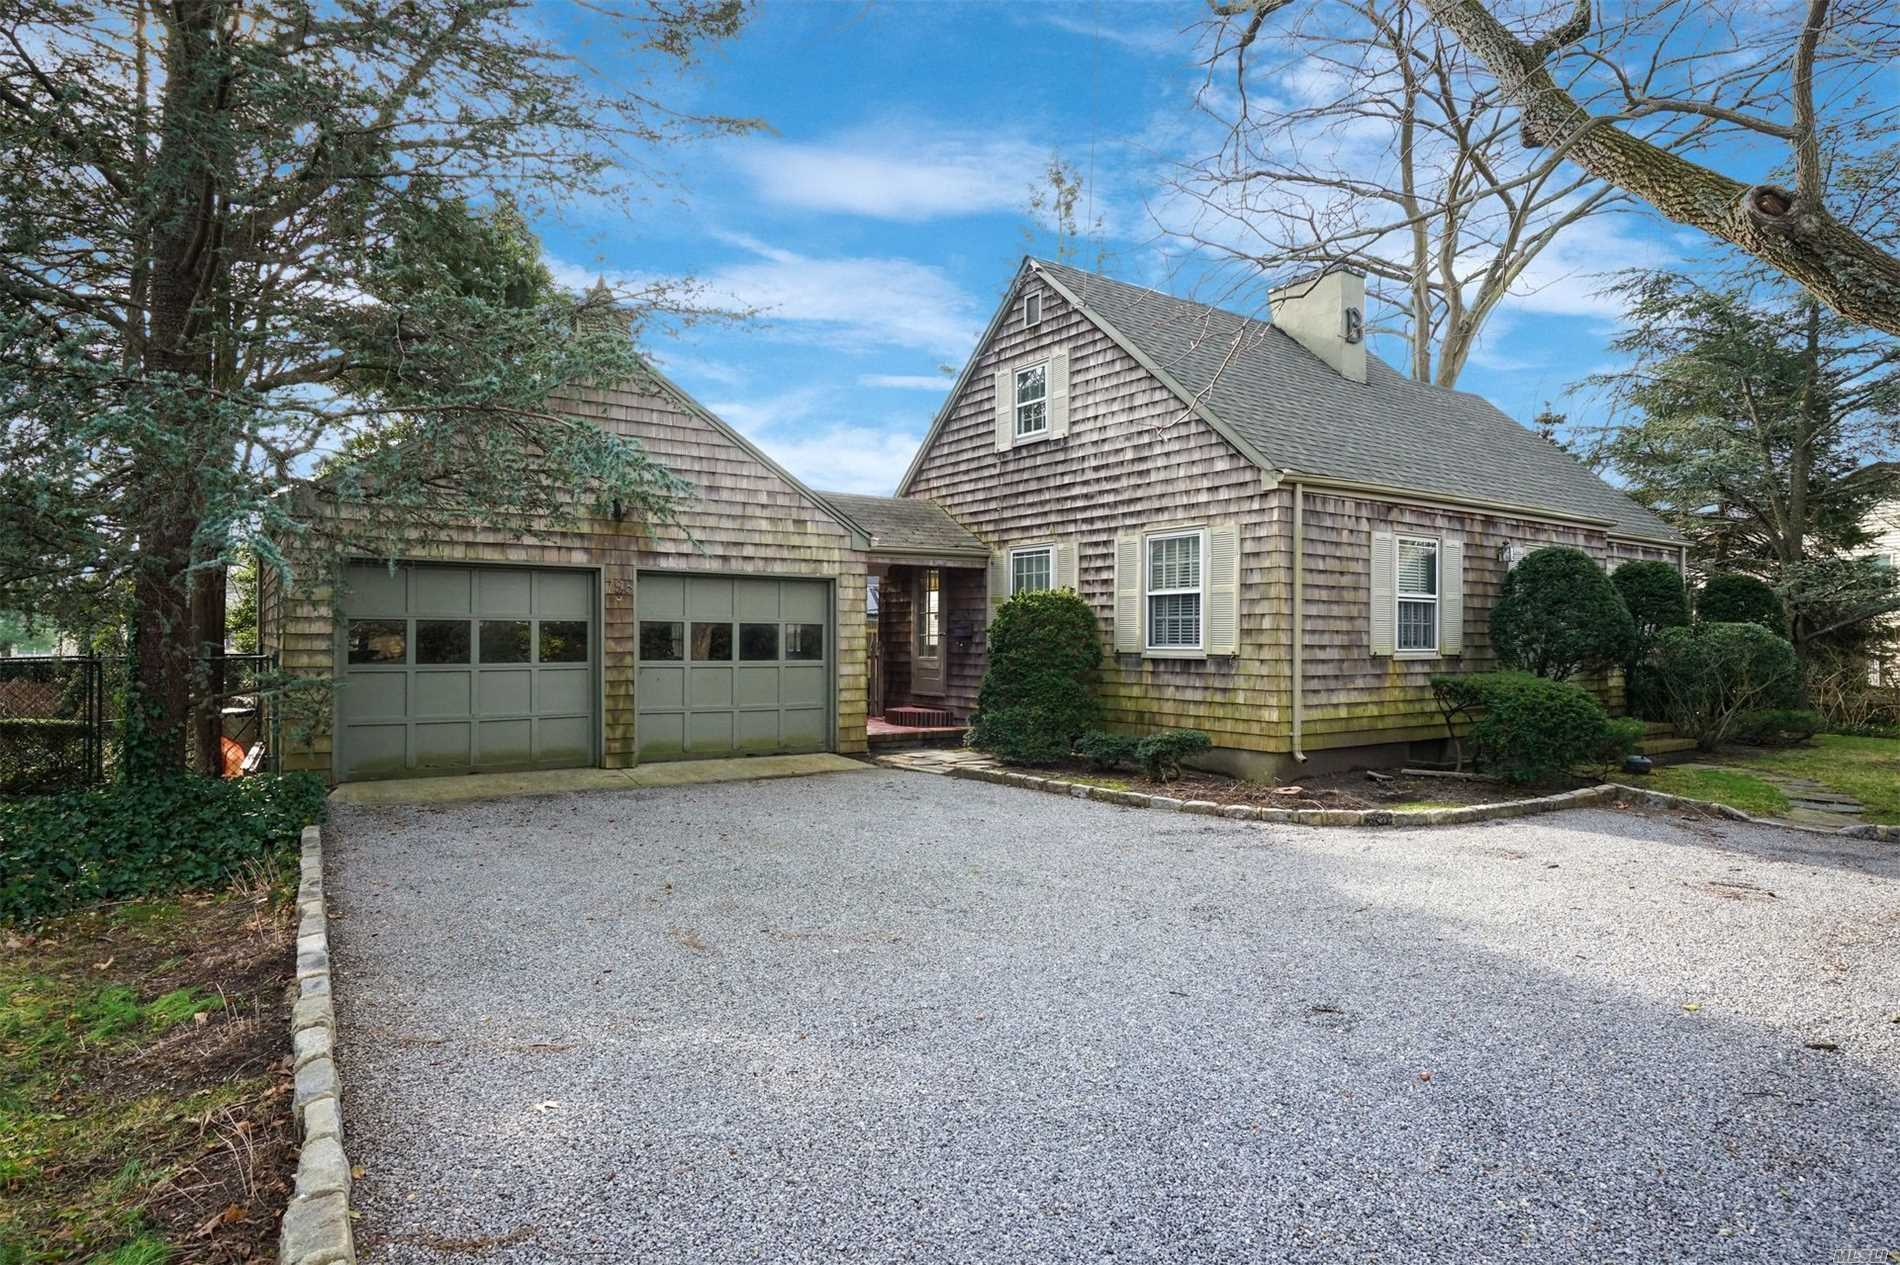 Quaint & Charming Cape, Well Loved Home, Set Back From Road, S. Montauk Hwy,  Breezeway To 2 C Det Garage With Mechanics Pit And Work Bench. Hw Floors Throughout, Mbr/Dbl Closets. Upstairs Bedrms Offer Window Seats With Storage And A Cedar Lined Closet. Half Bath (Poss Full Bath) Private Yard With Slate Patio Area. Near Shopping, Easy Access To Hwys.